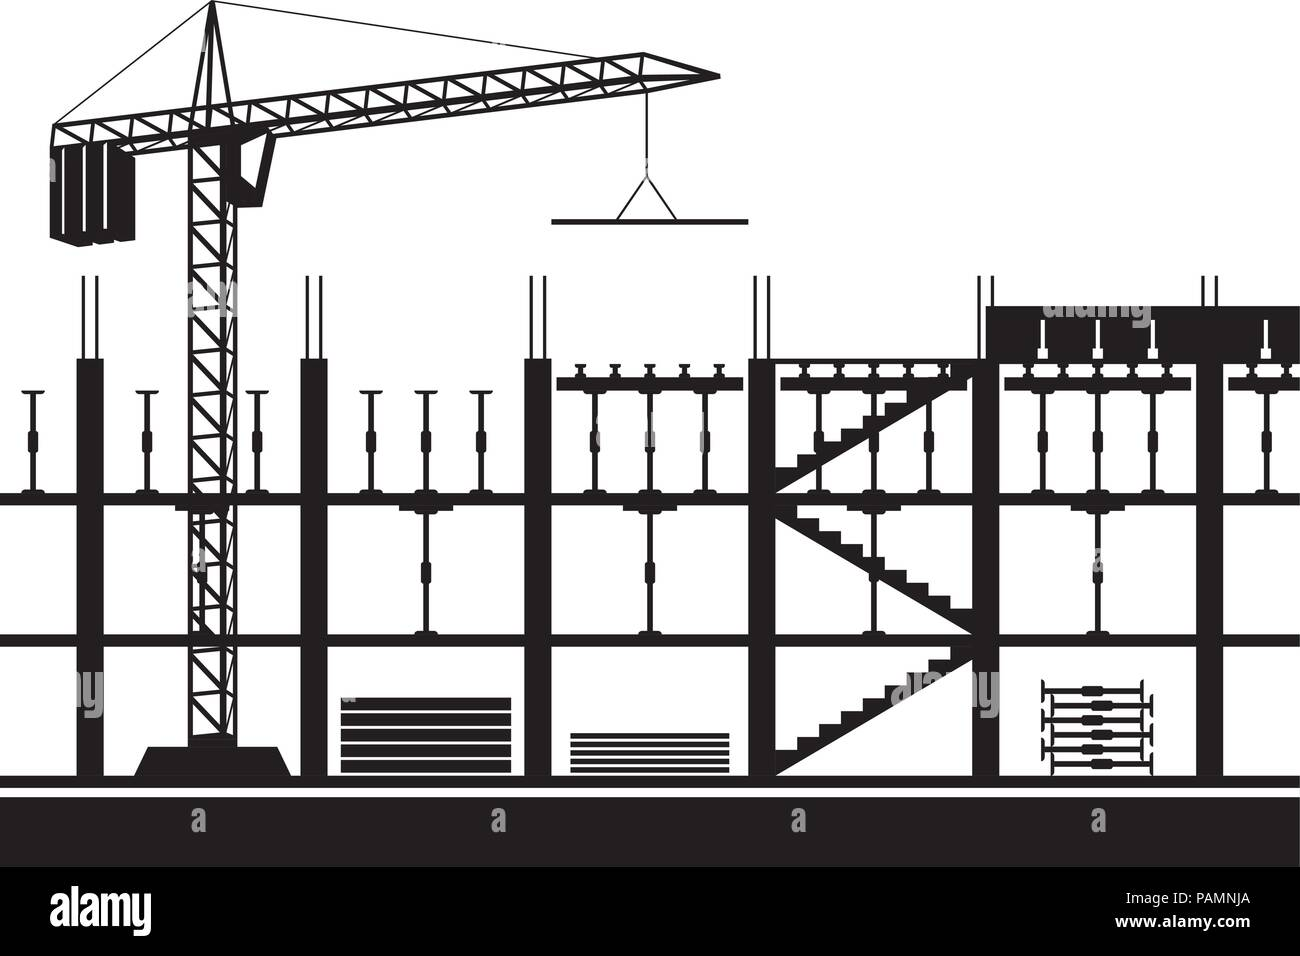 Construction of scaffolding for concrete slab - vector illustration - Stock Vector